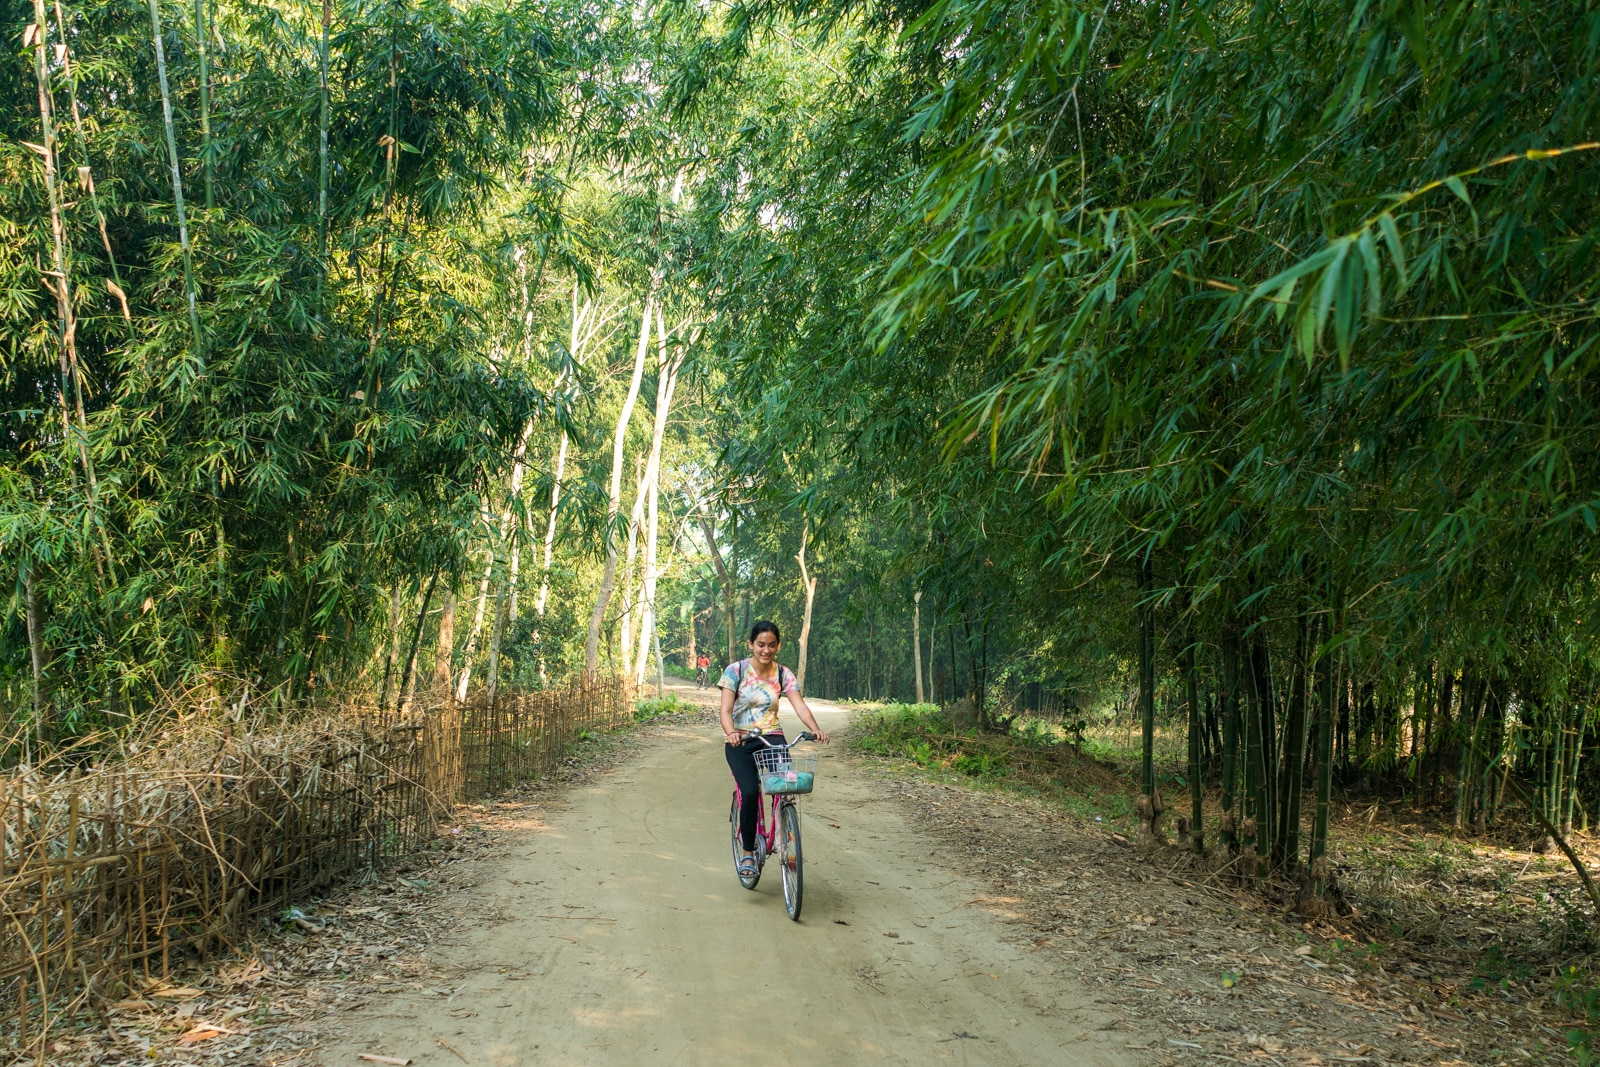 Breaking up on the road - Bicycling on Majuli river island in Assam, India - Lost With Purpose travel blog